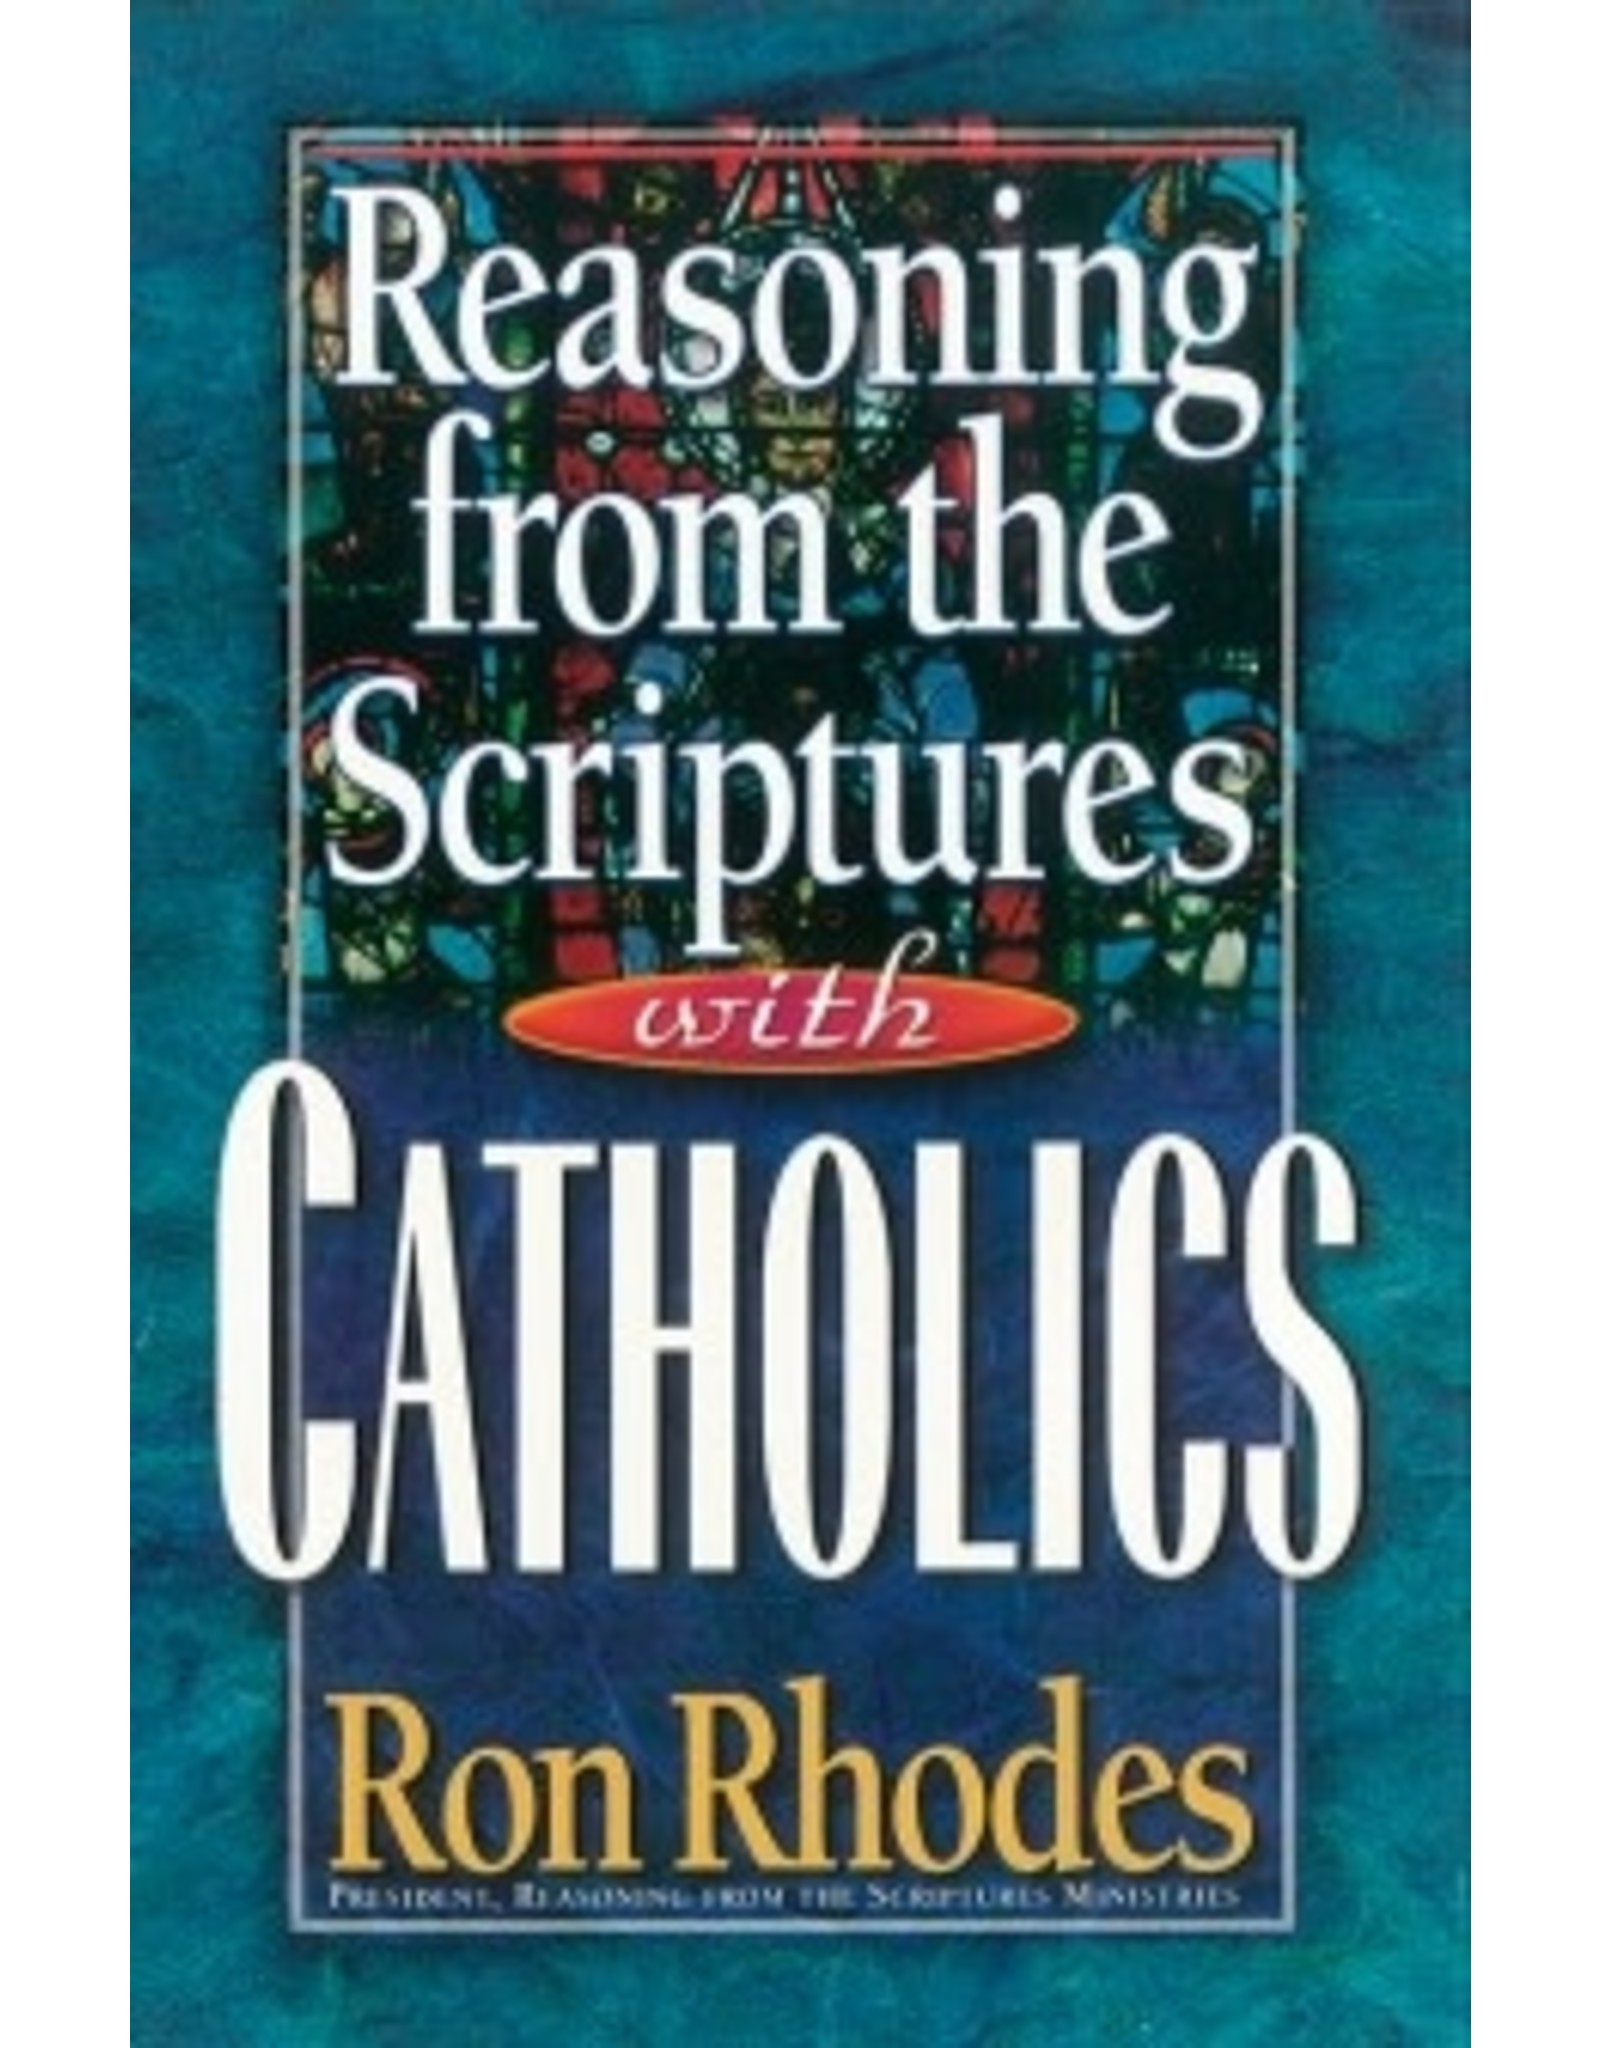 Rhodes Reasoning from the Scriptures with Catholics